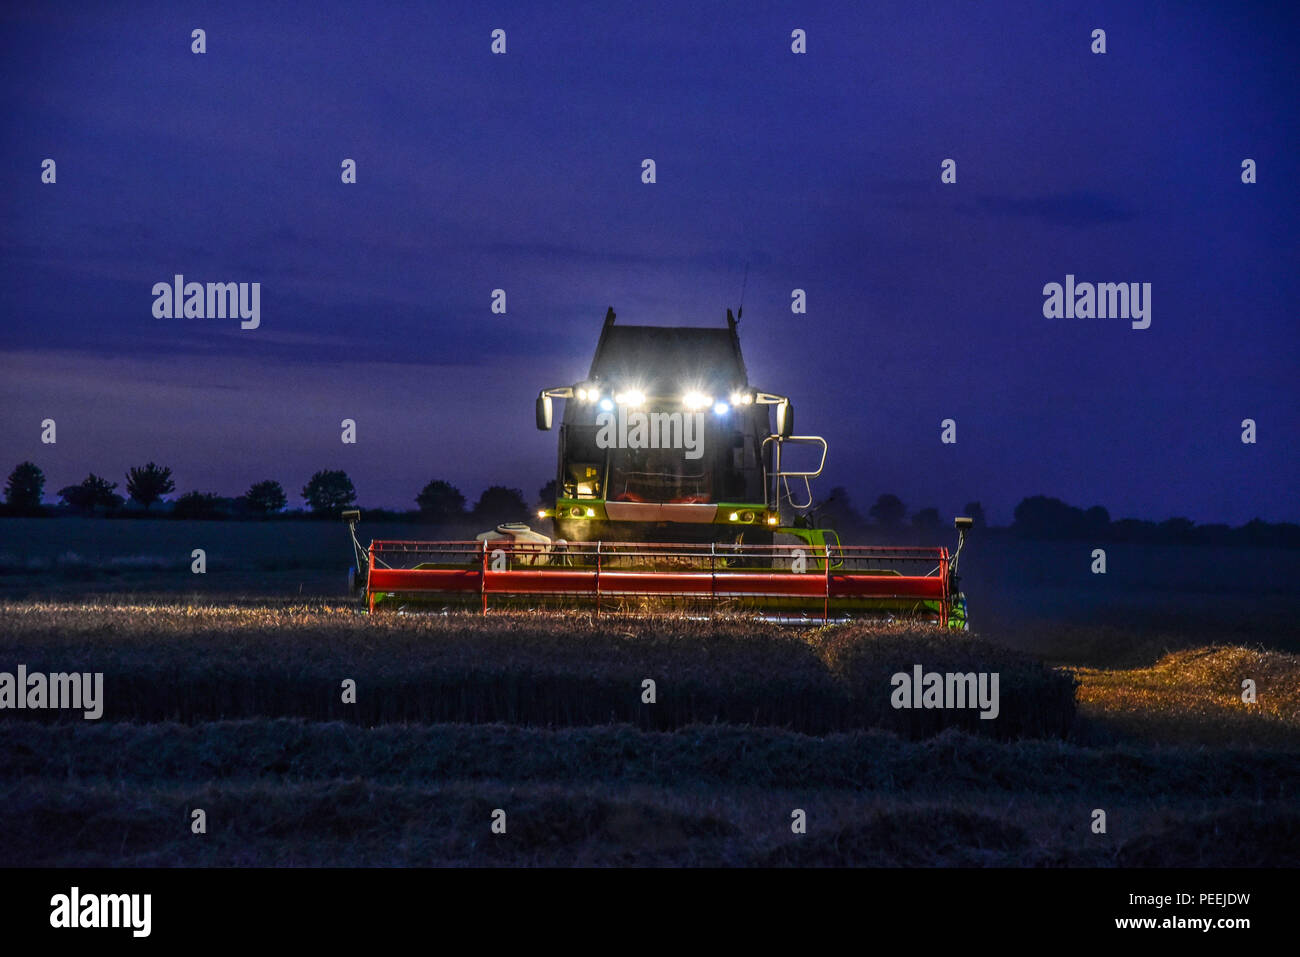 A combine harvester harvesting a field of corn as the sun goes down , headlights on. Stock Photo